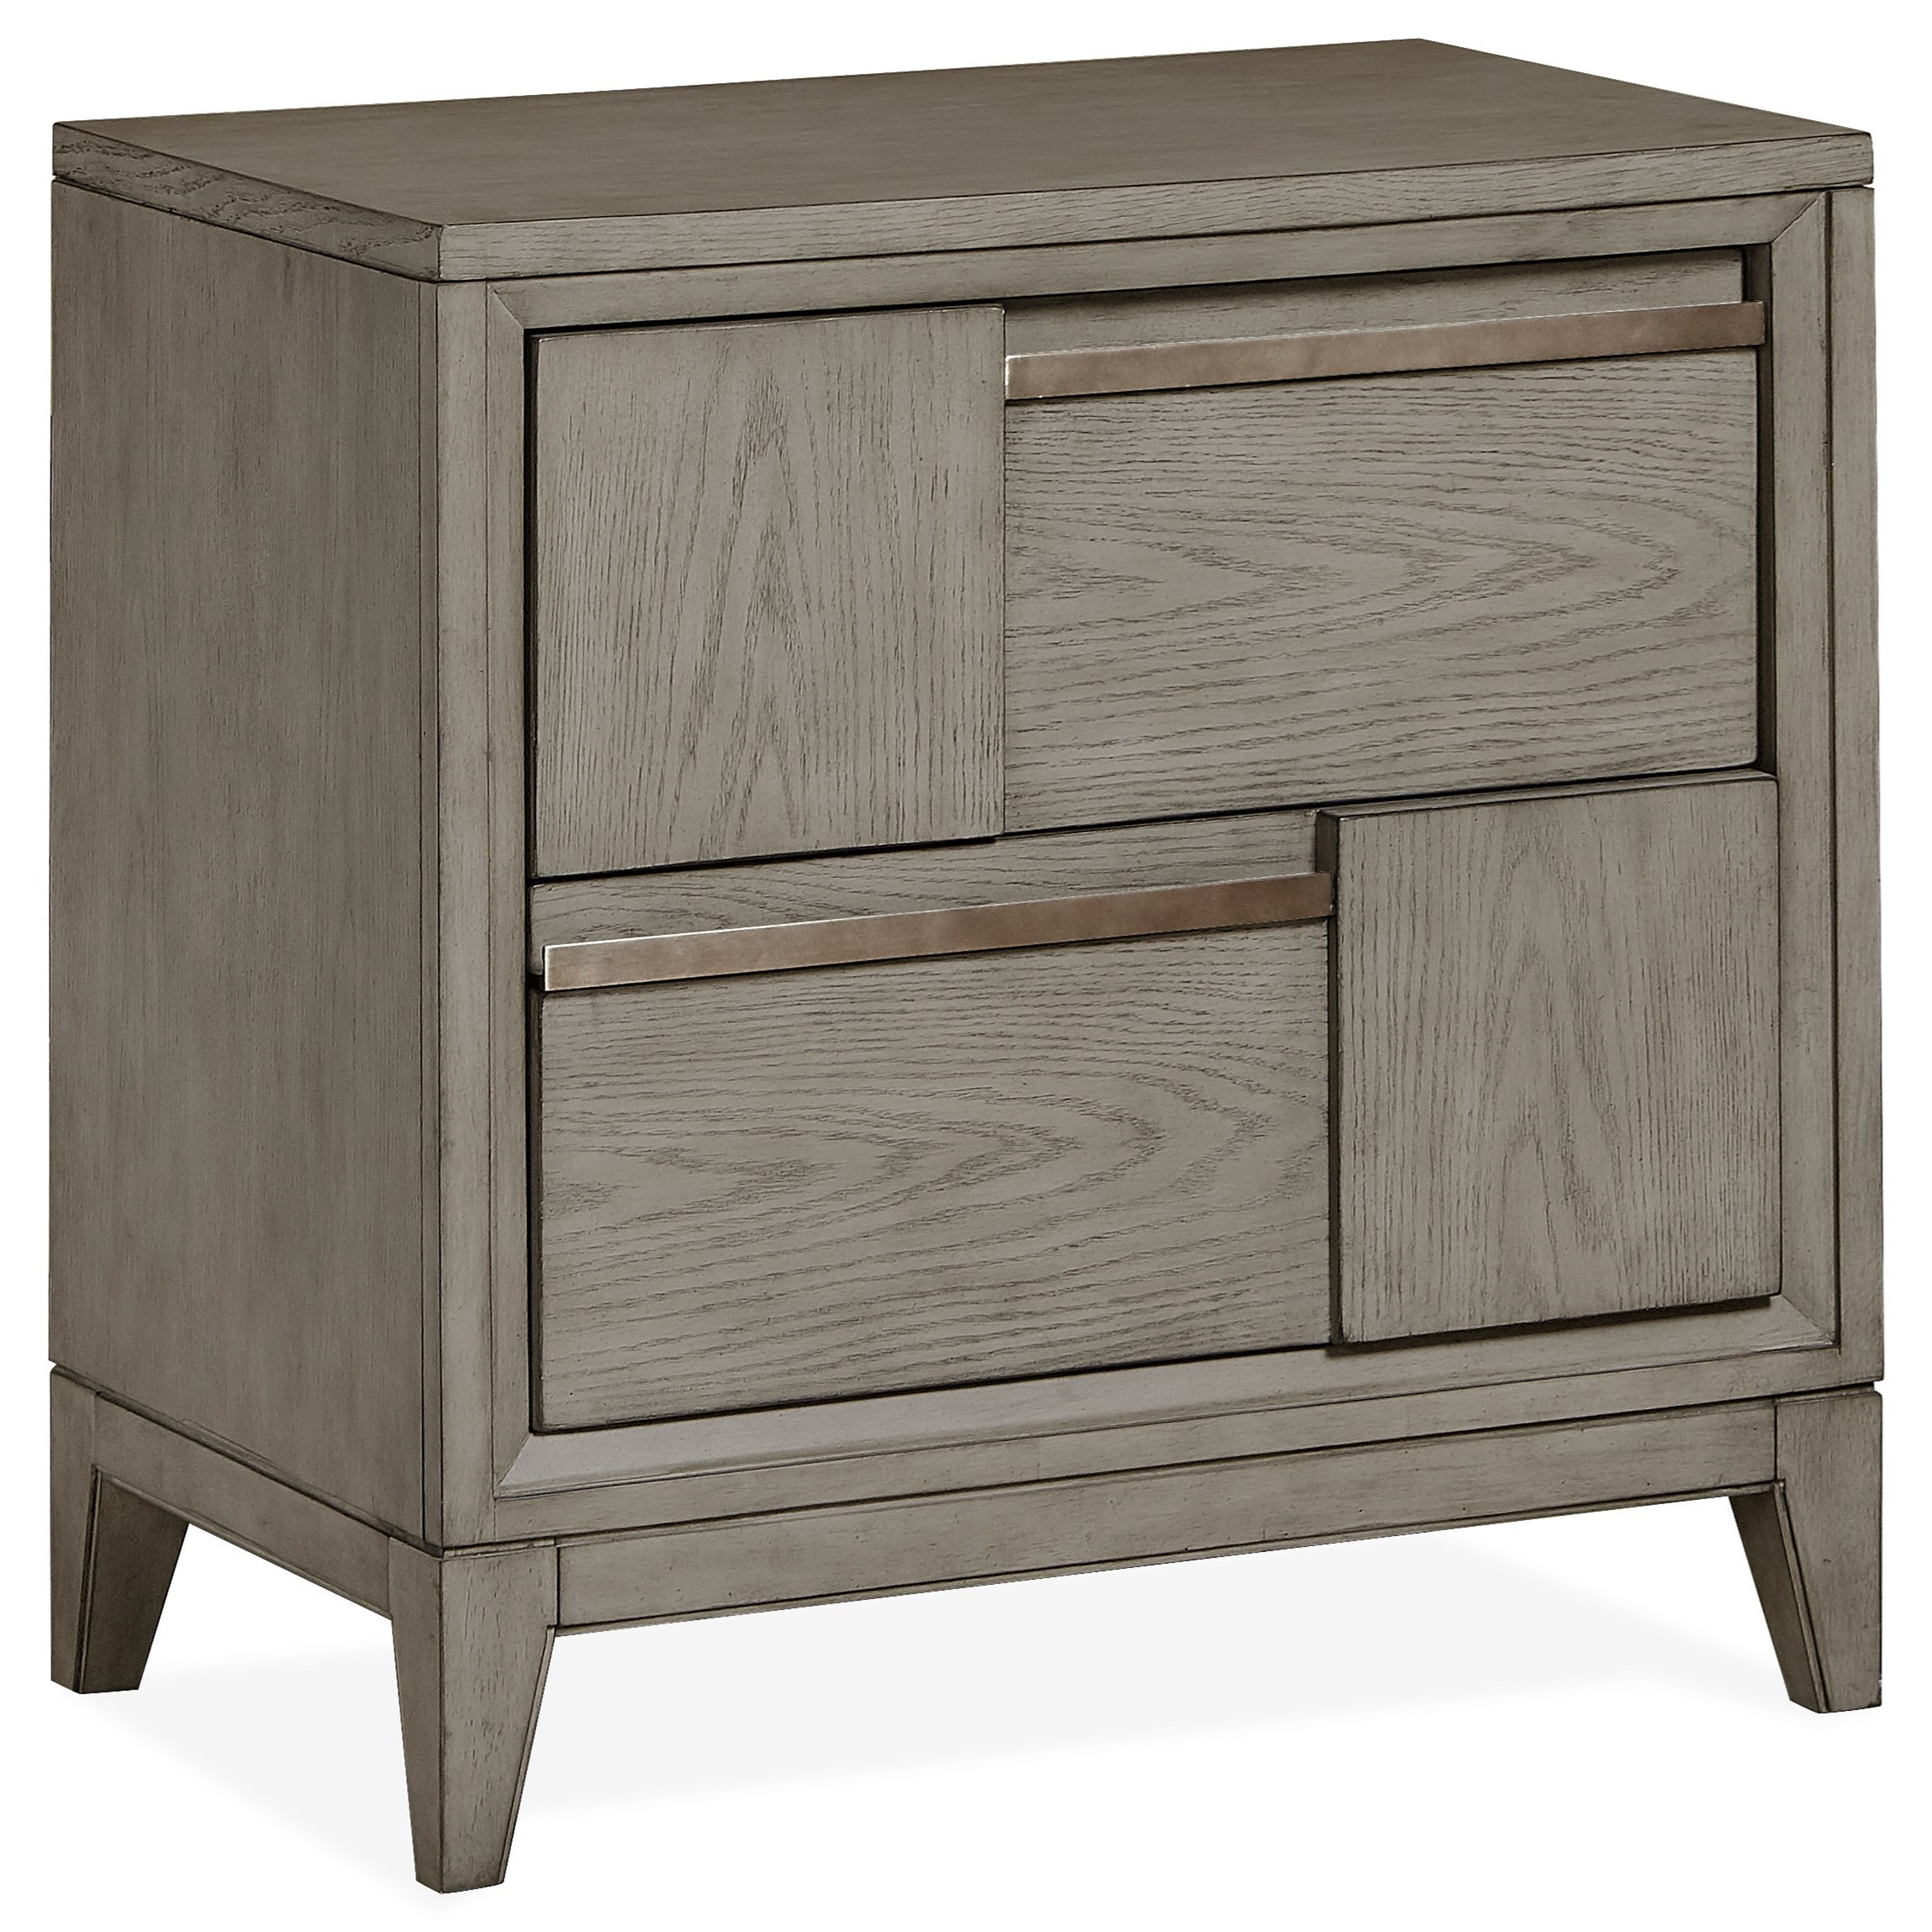 Atelier Nightstand by Magnussen Home at Value City Furniture